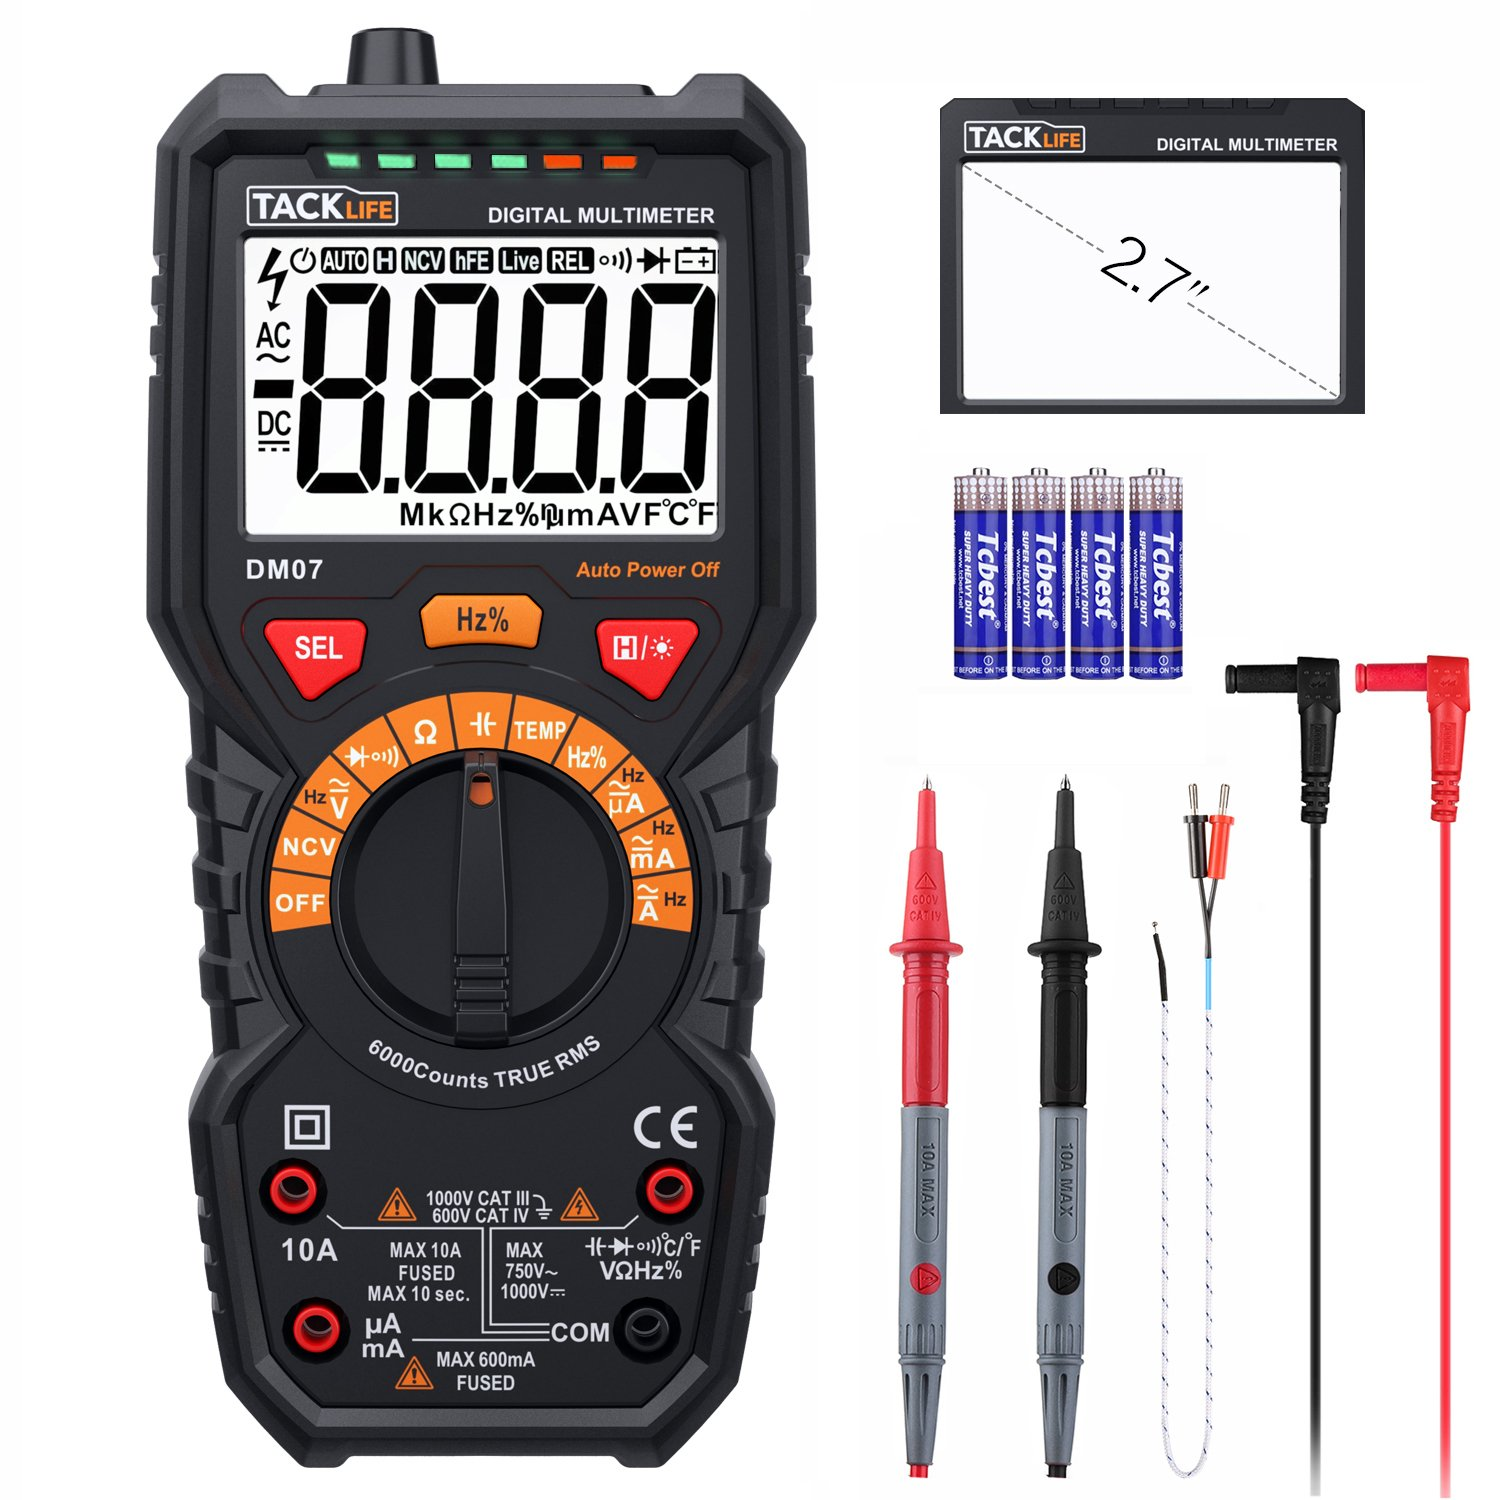 Multimeter, Tacklife DM07 6000 Counts Auto-Ranging Electrical Tester, AC/DC Voltage Current Detector, NCV, Resistance, Capacitance, Diode Electronic Tester, Duty Cycle digital Meter, 2.7 Inch LCD